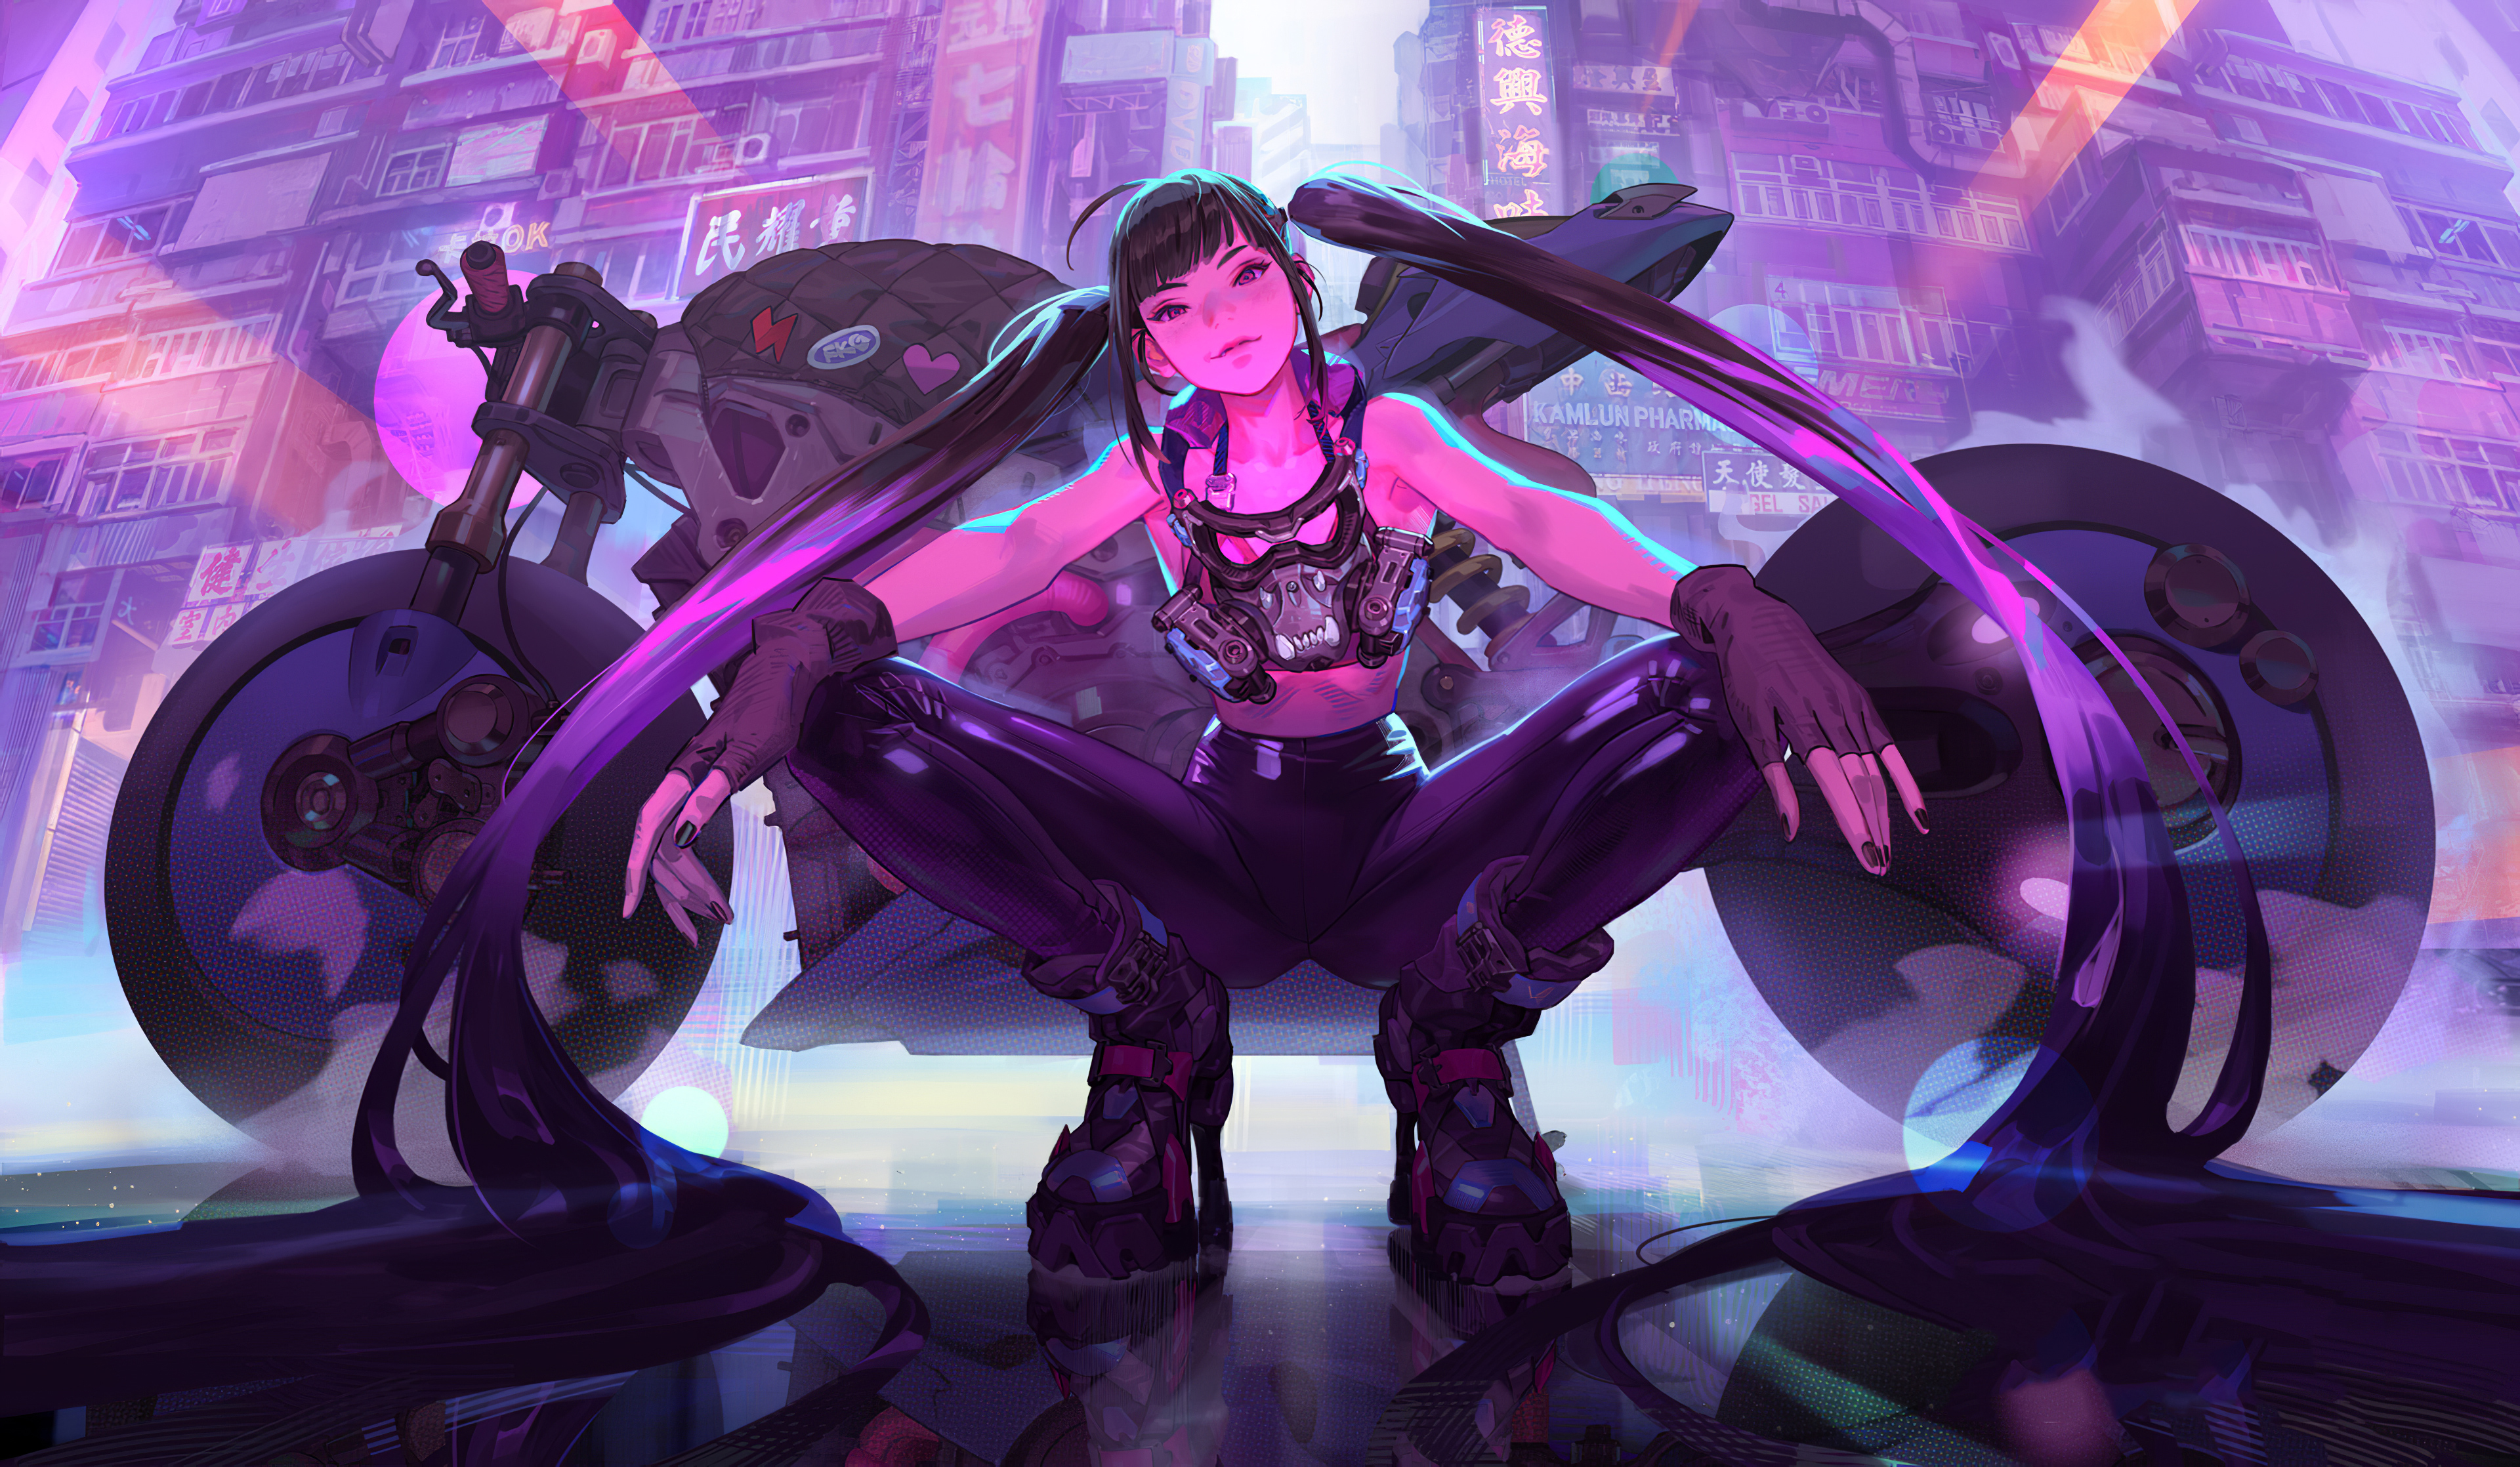 Cyberpunk Girl Bike 4k Artwork Hd Artist 4k Wallpapers Images Backgrounds Photos And Pictures